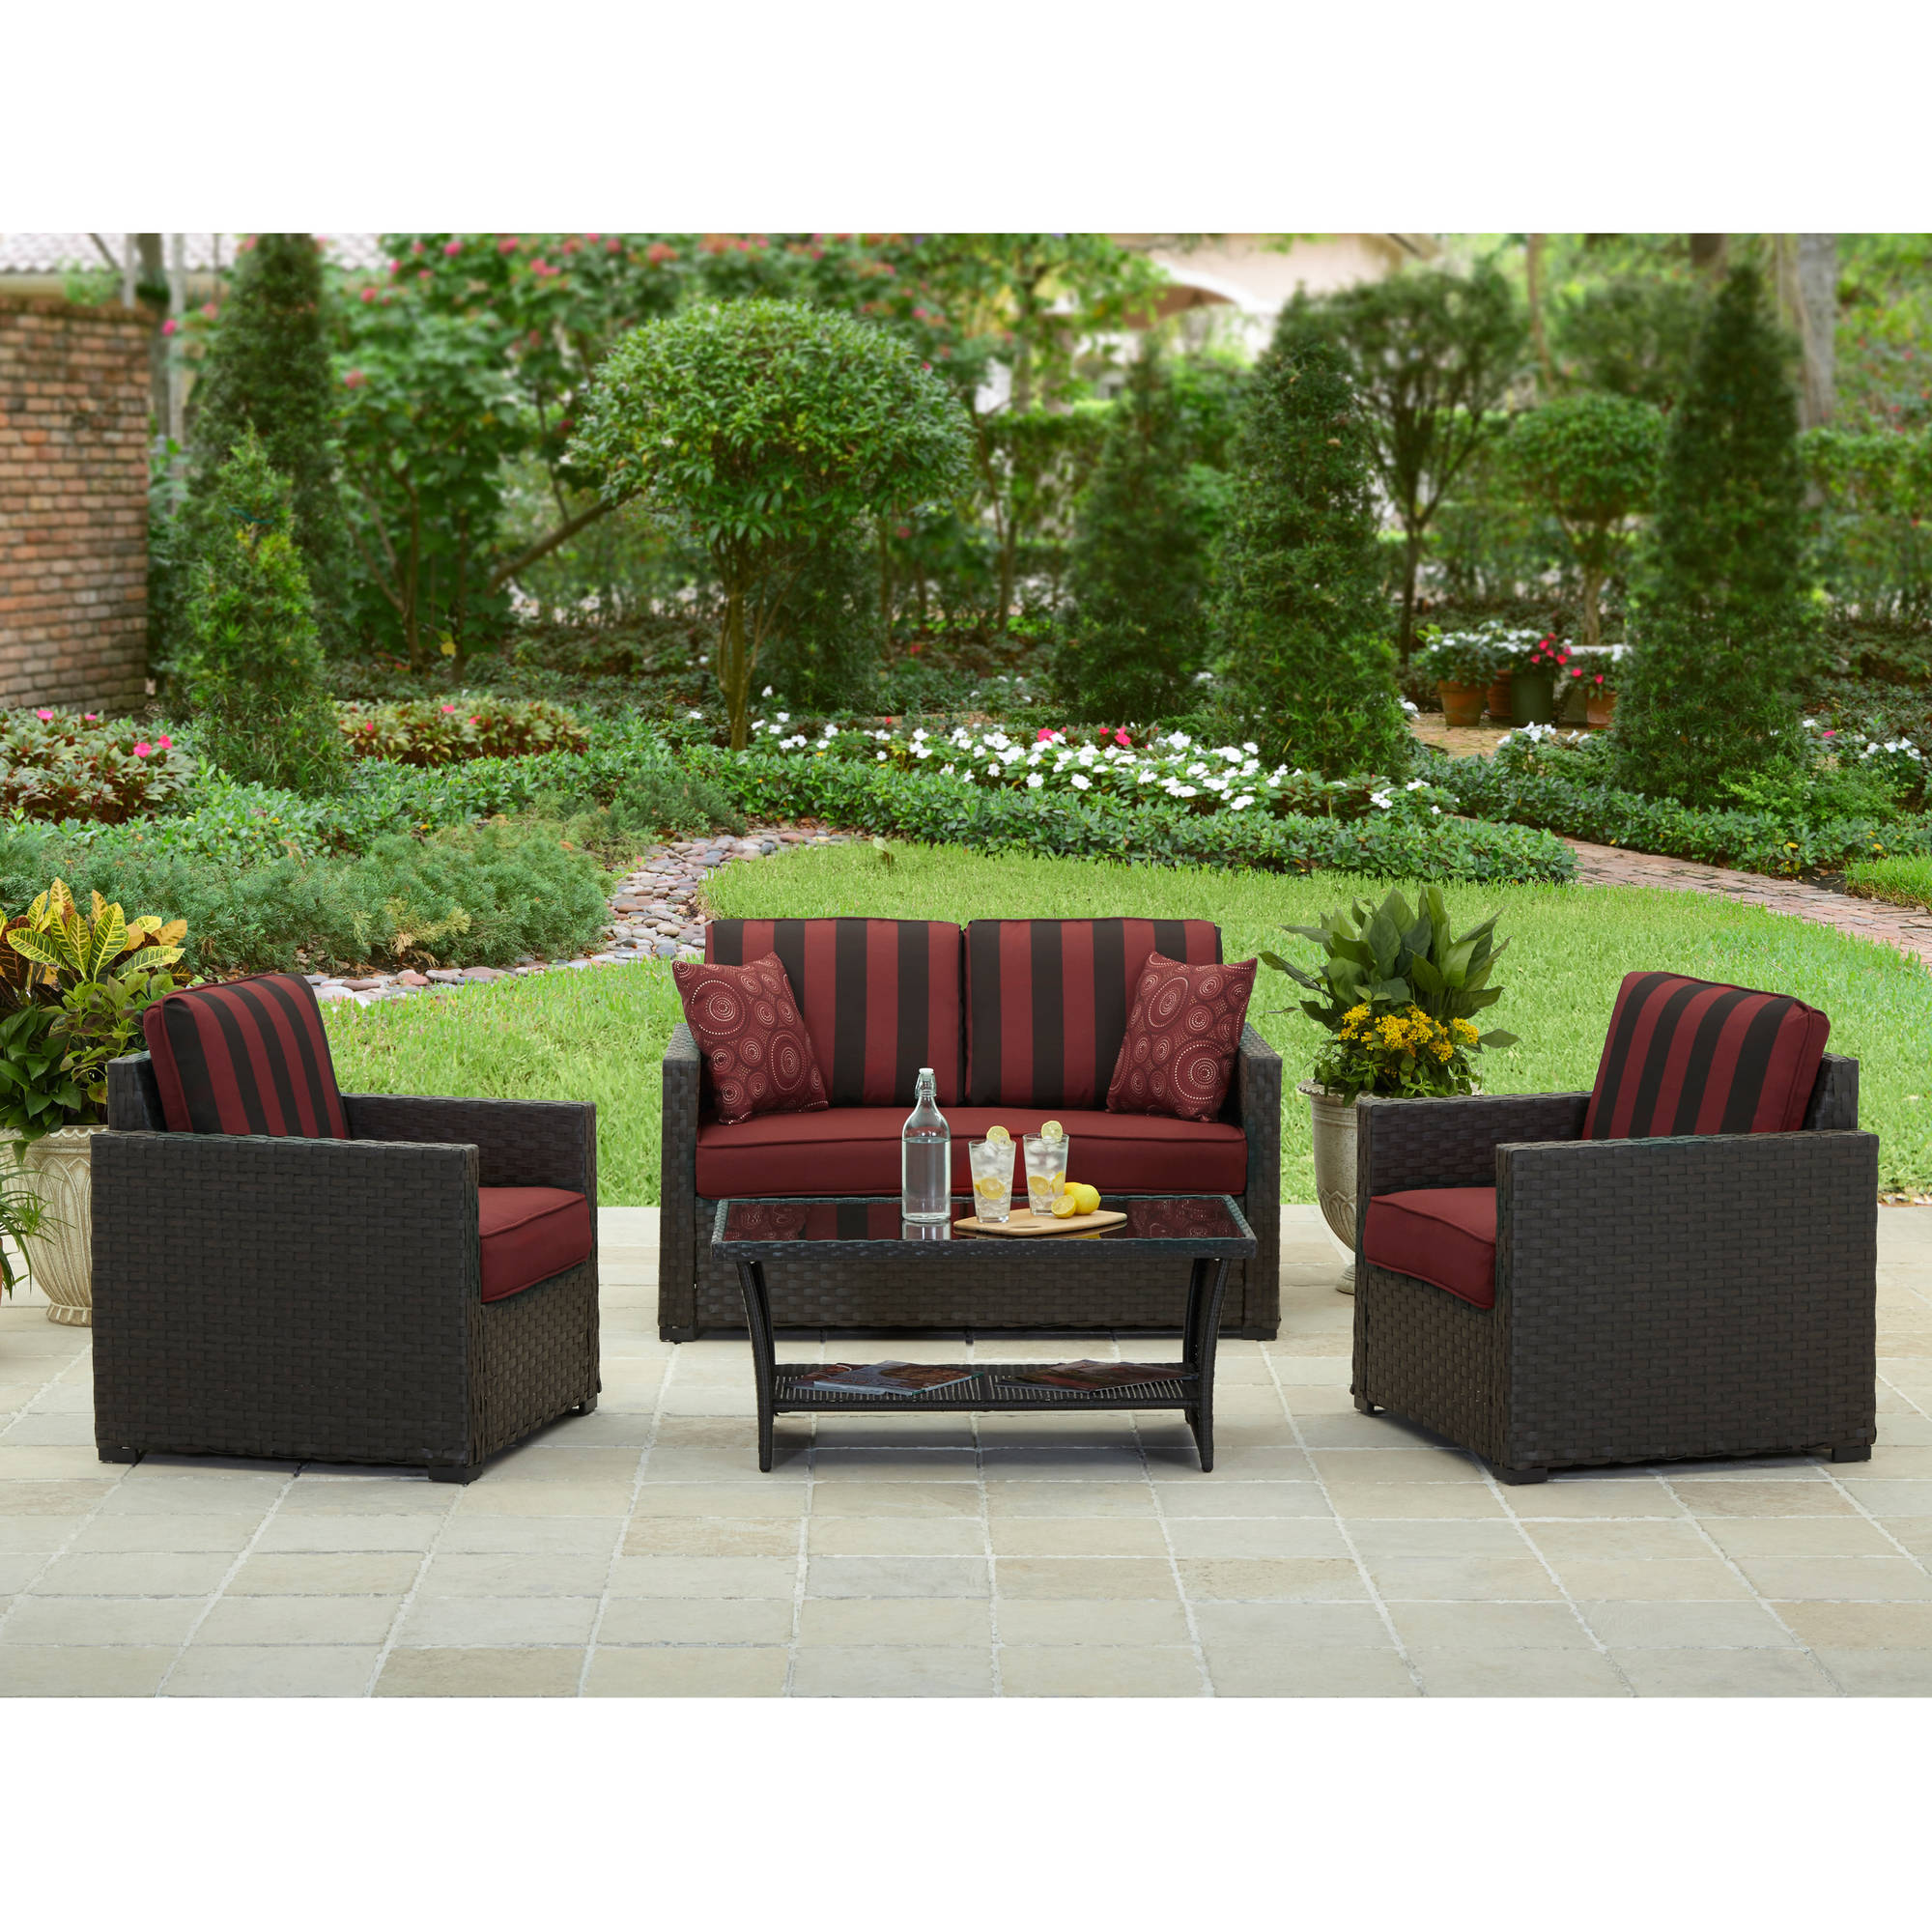 Better Homes And Gardens Rush Valley 4 Piece Outdoor Conversation Set